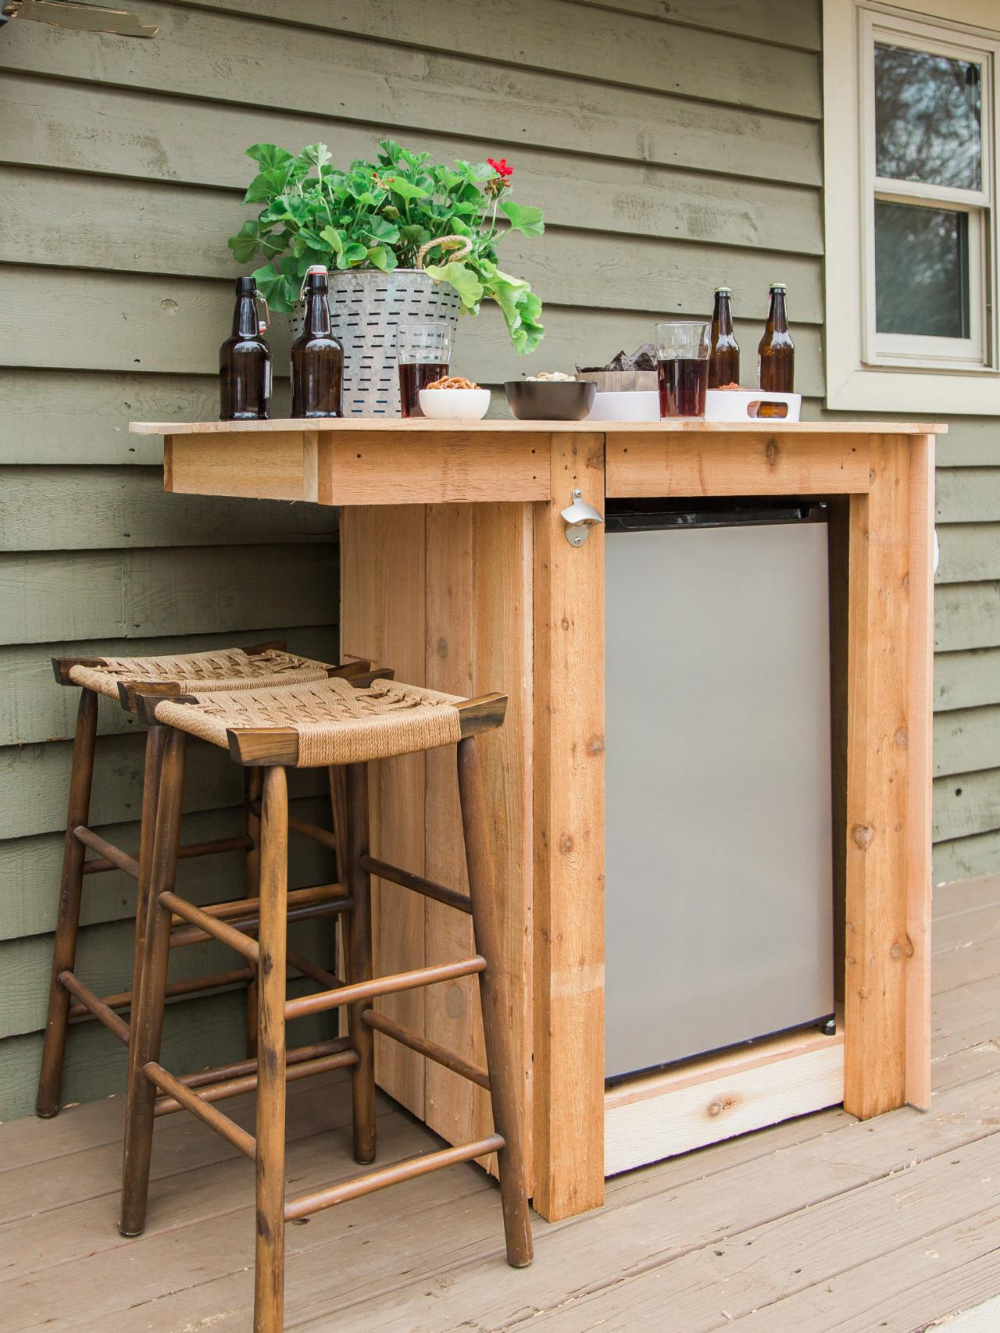 Google Image Result For Http Www Recognizealeader Com Bigbox Ho How To Build An Outdoor Minibar Hgtv Out In 2020 Diy Outdoor Bar Outdoor Refrigerator Outdoor Remodel